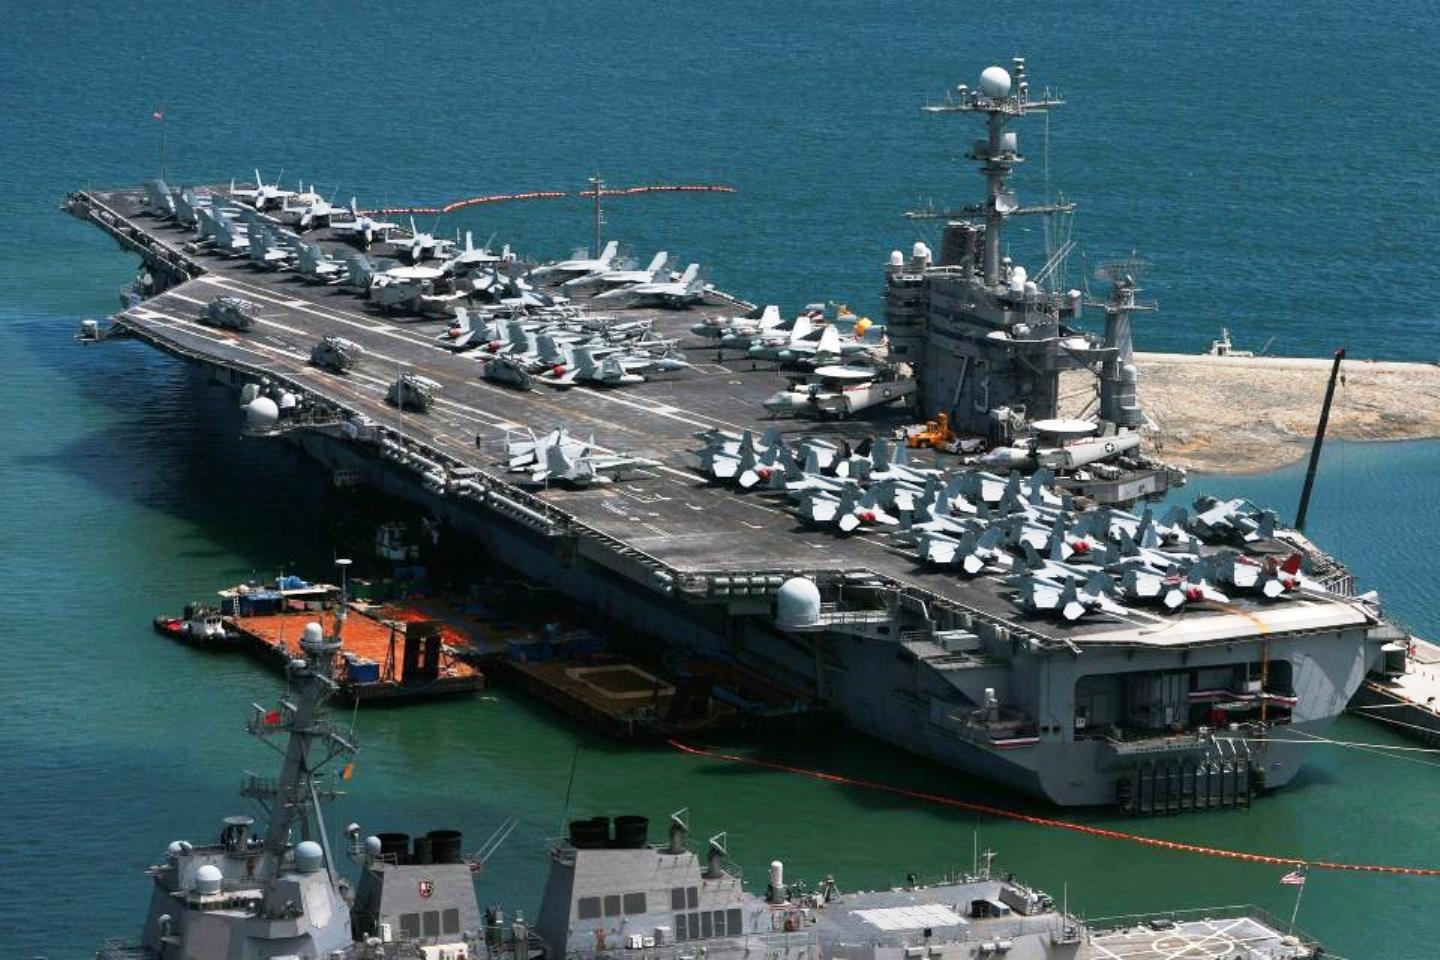 China to sink 2 US aircraft carriers killing 10,000 in SCS ...